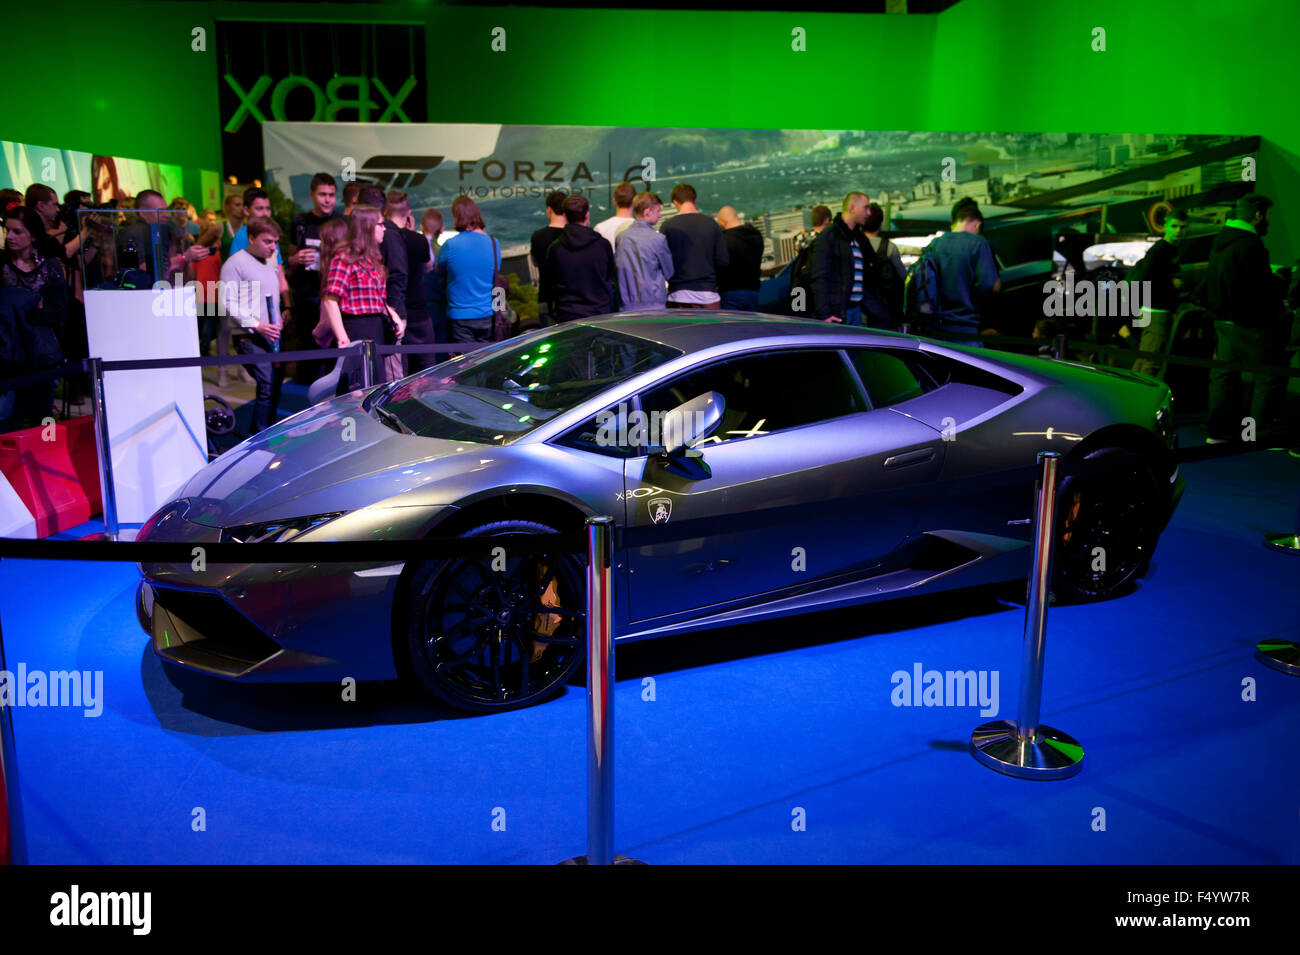 Expo Car Stock Photos Expo Car Stock Images Alamy - Car show games